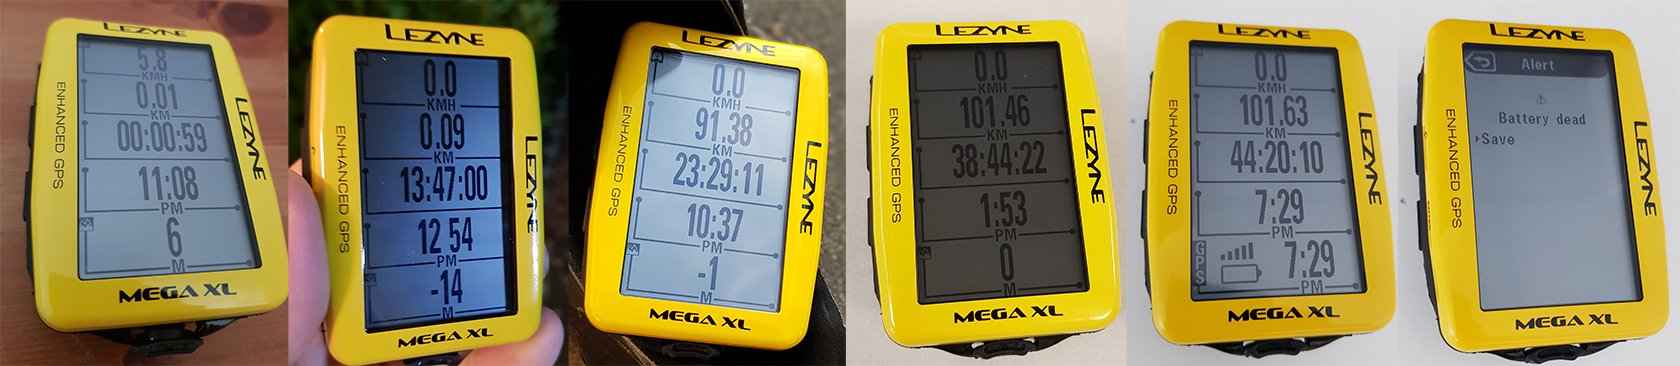 Burn time  Lezyne Mega XL